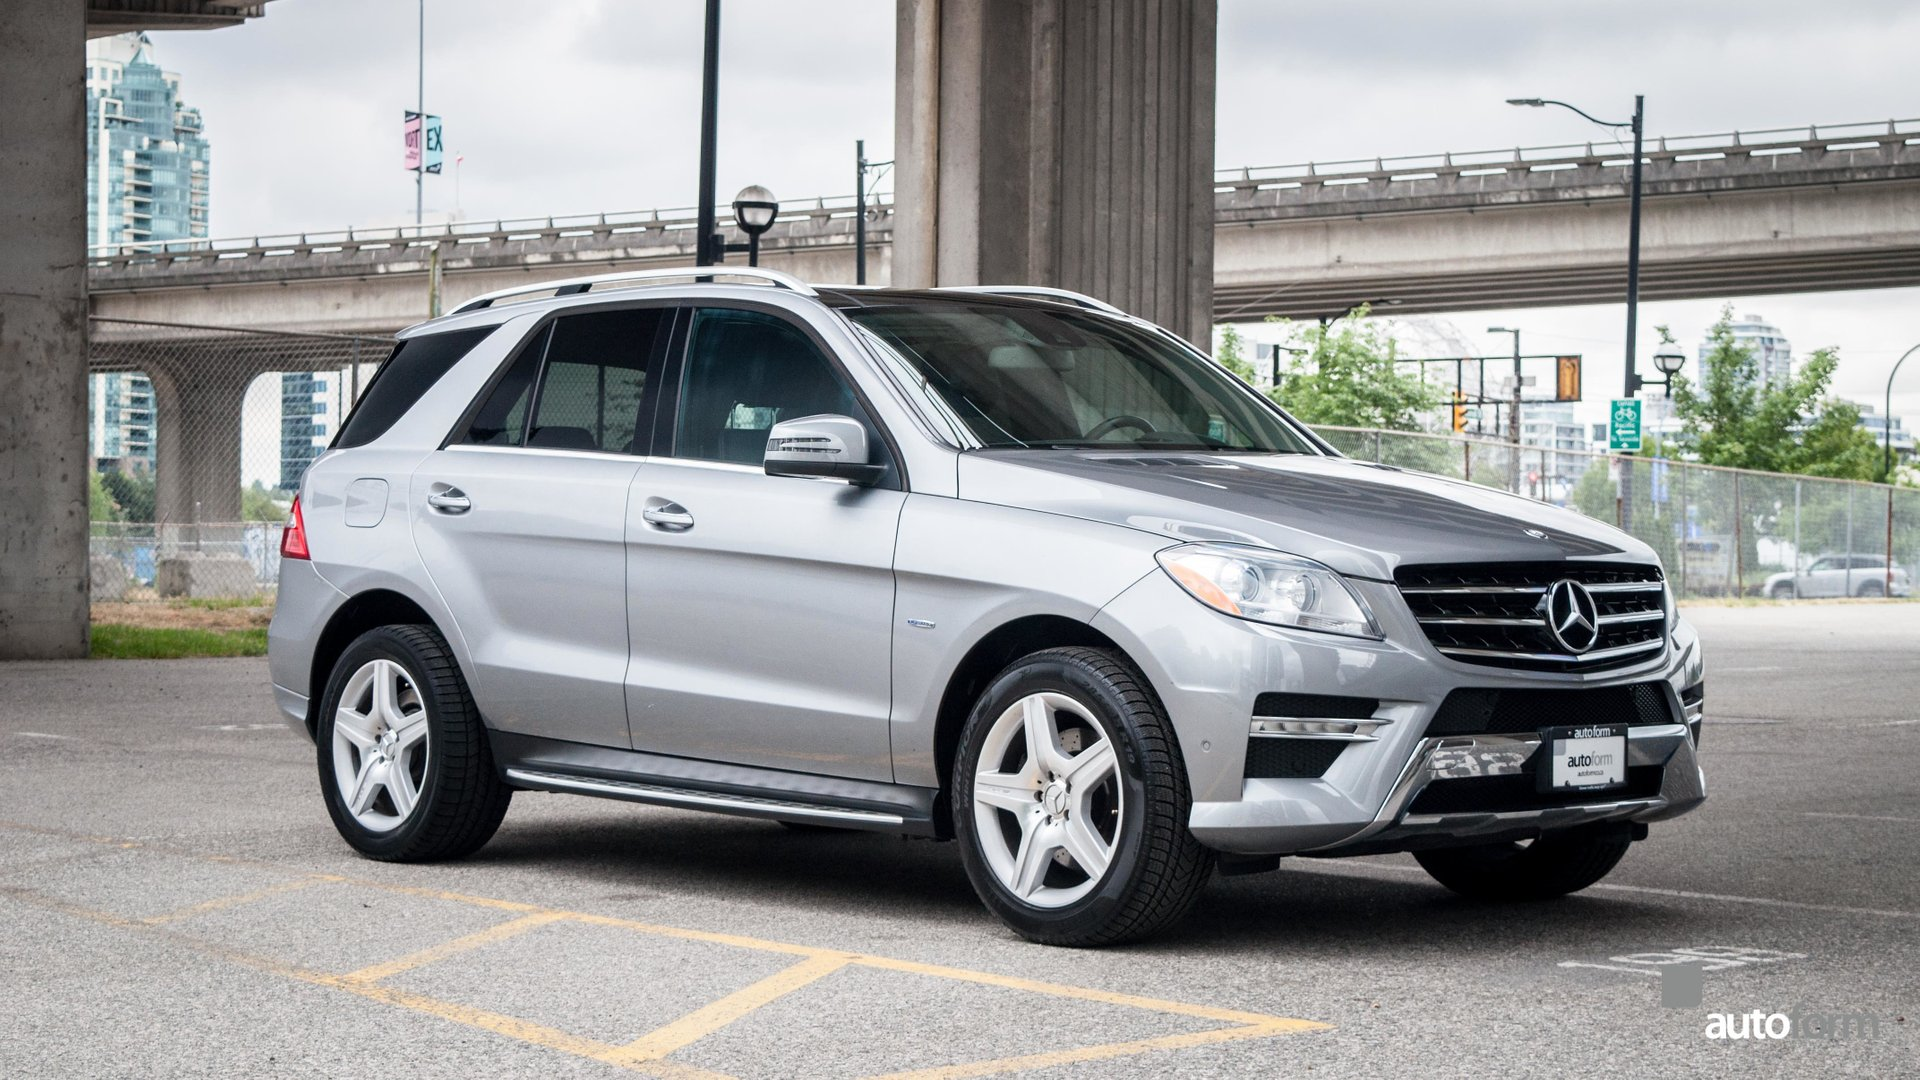 2012 mercedes benz ml350 4matic